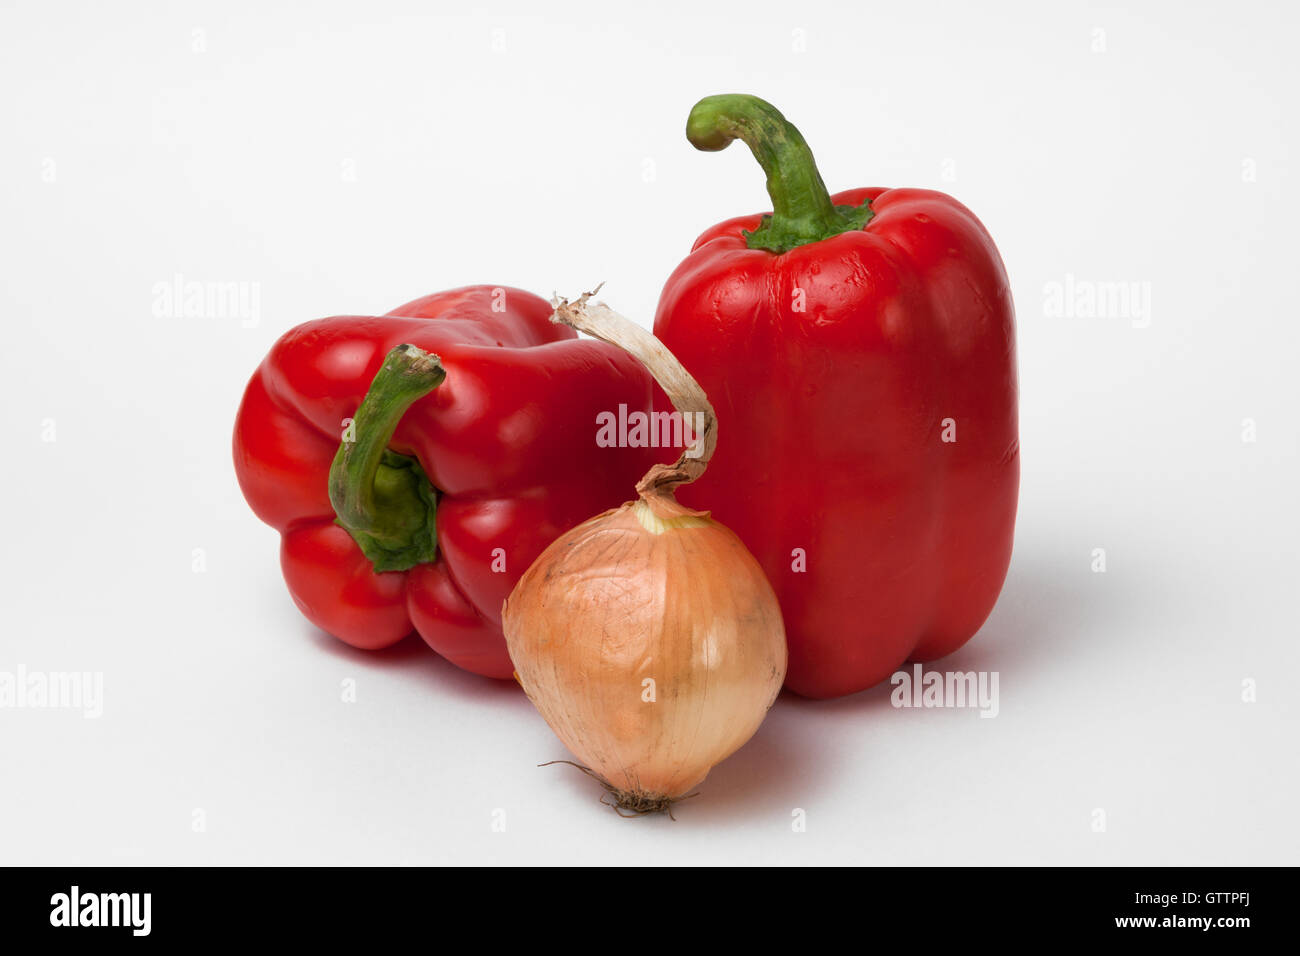 Two red bell peppers and an onion of brown color against white background. Vegetables and food ingredients. Sweet - Stock Image